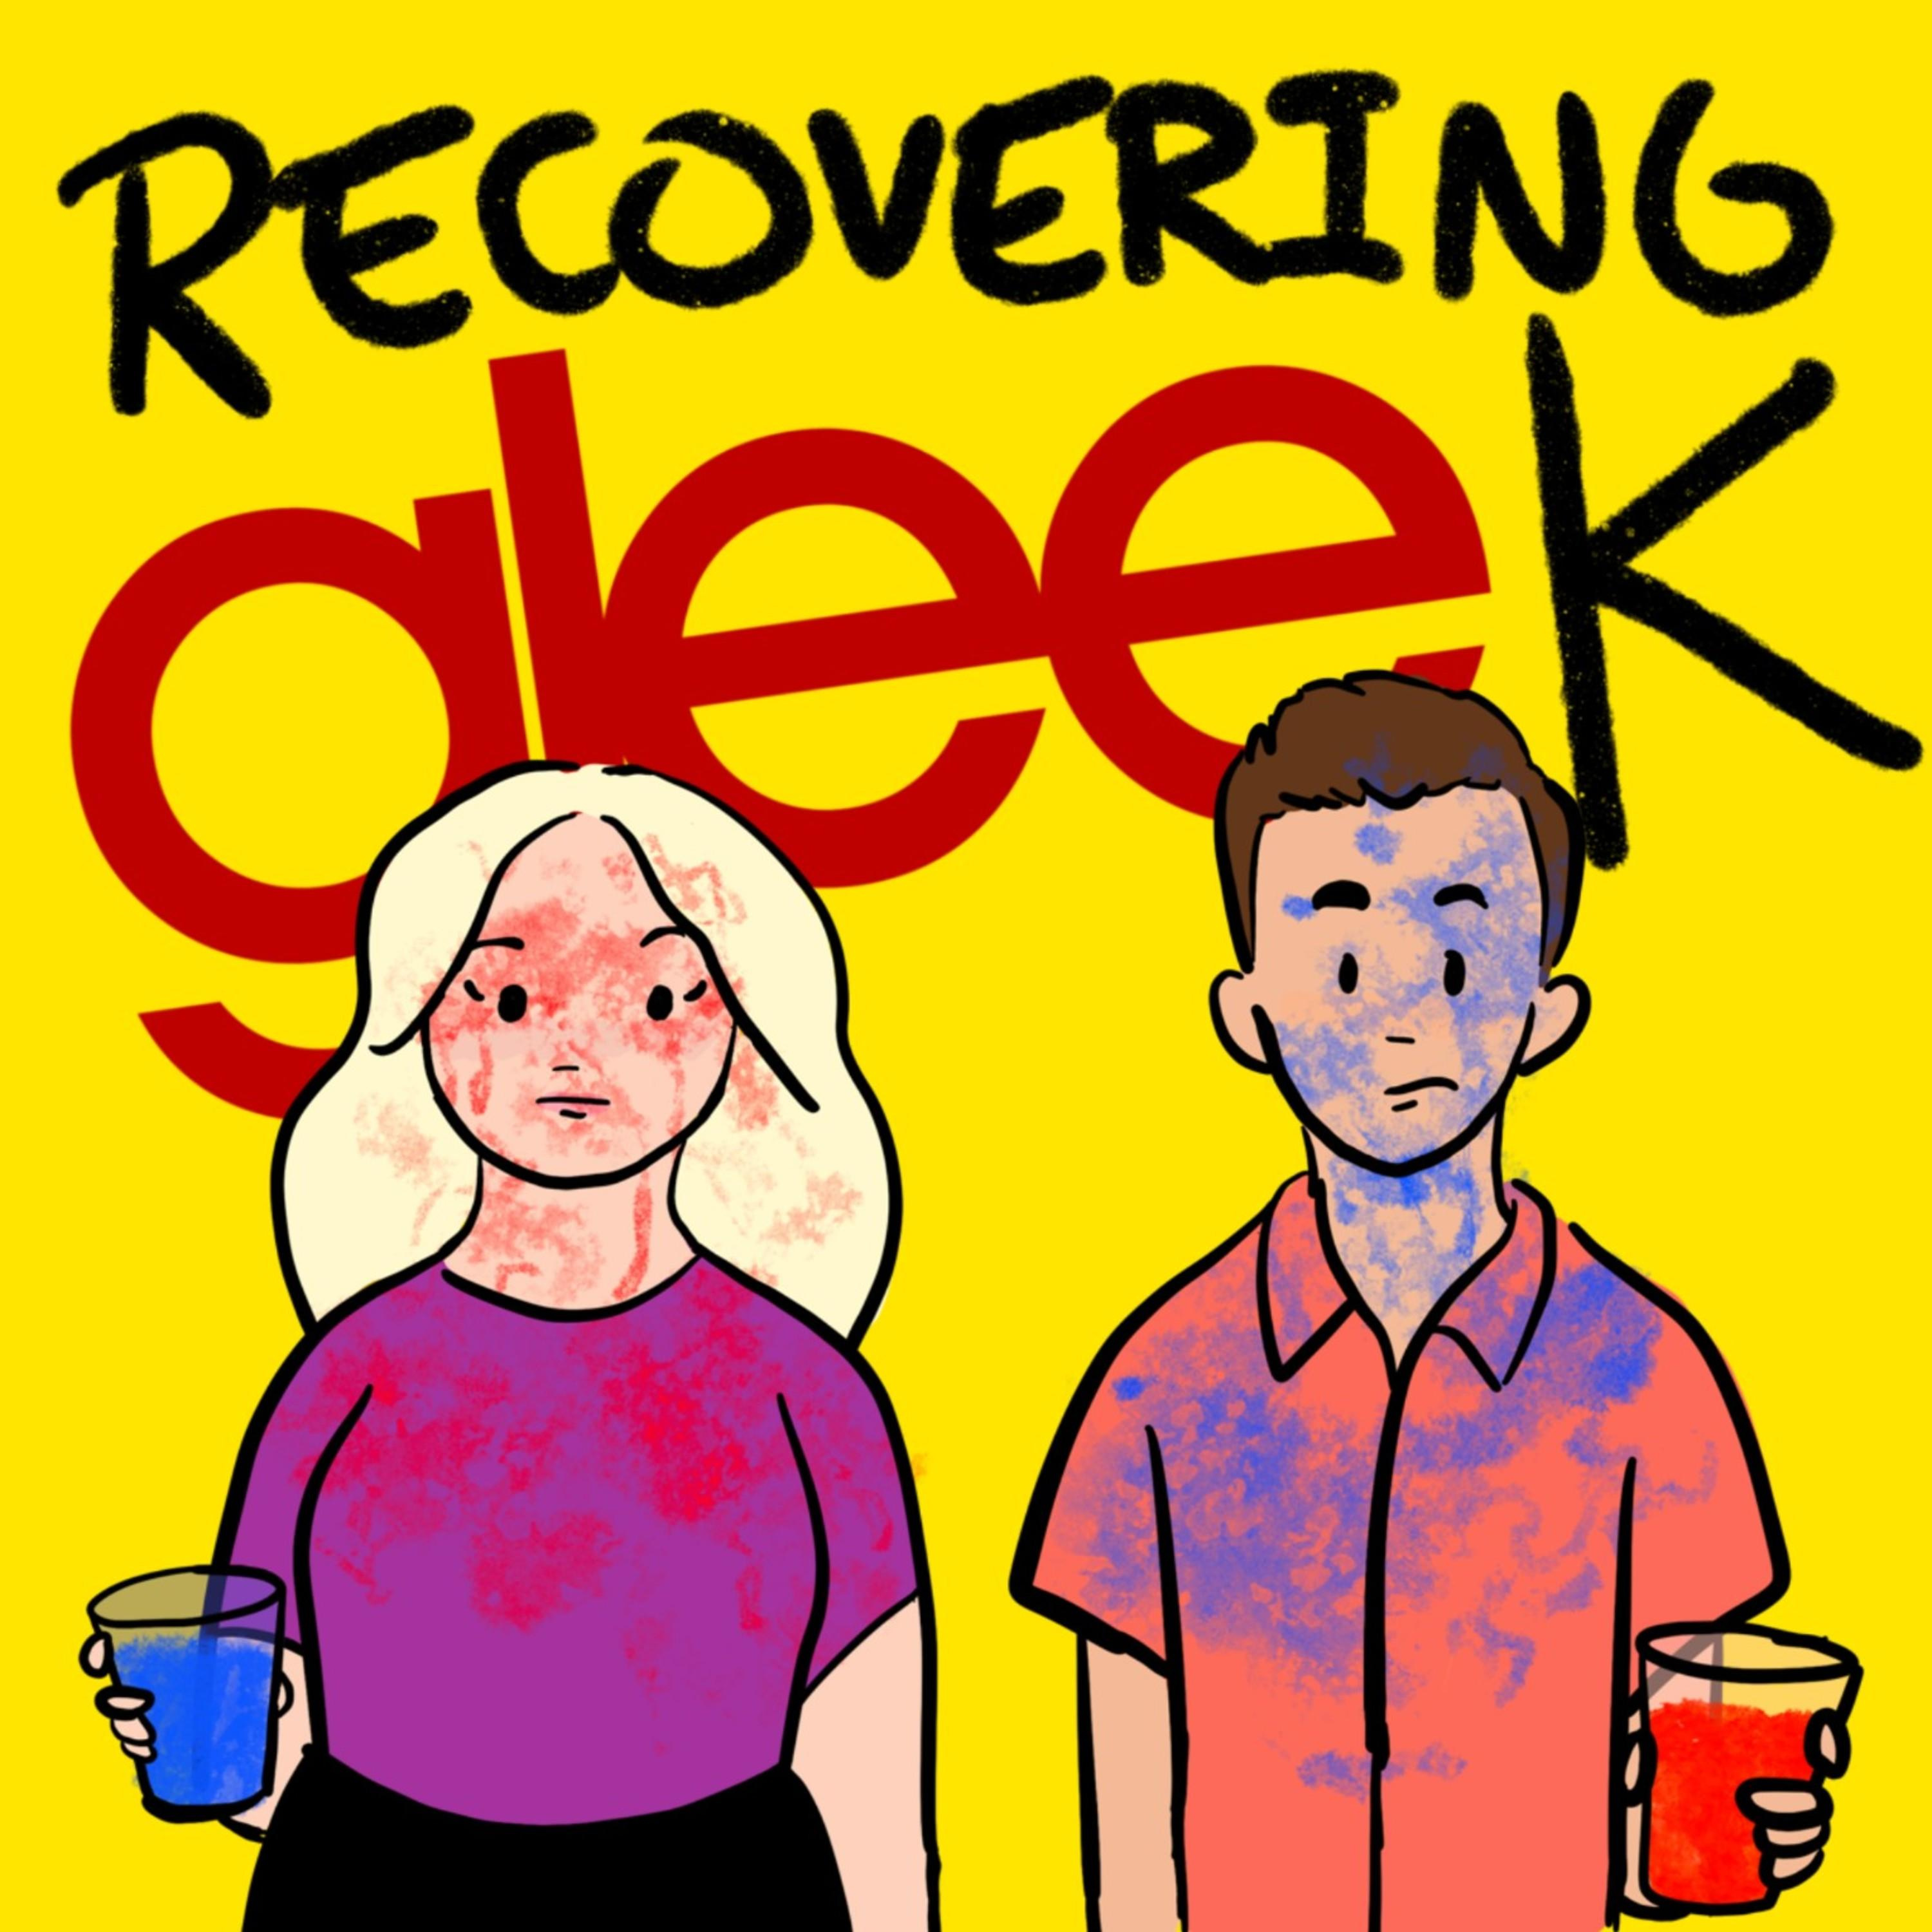 Recovering Gleek: A Glee Podcast